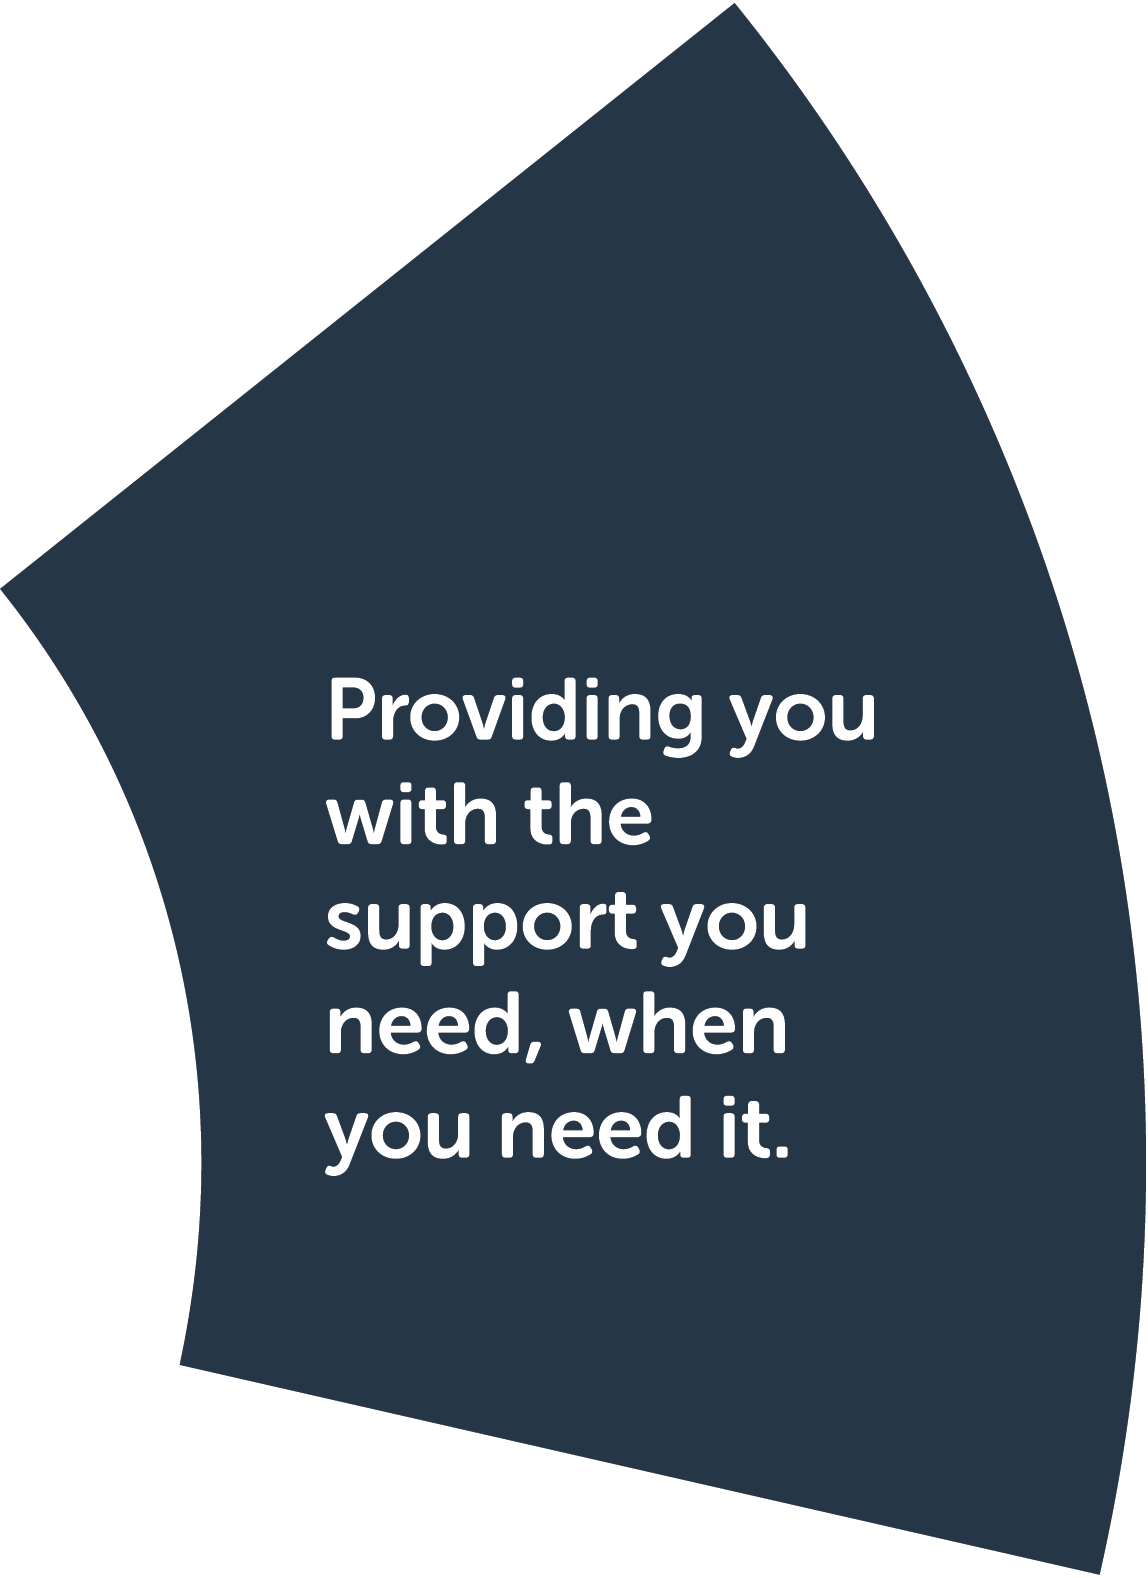 Step 2: Discuss my needs. Providing you with the support you need, when you need it.